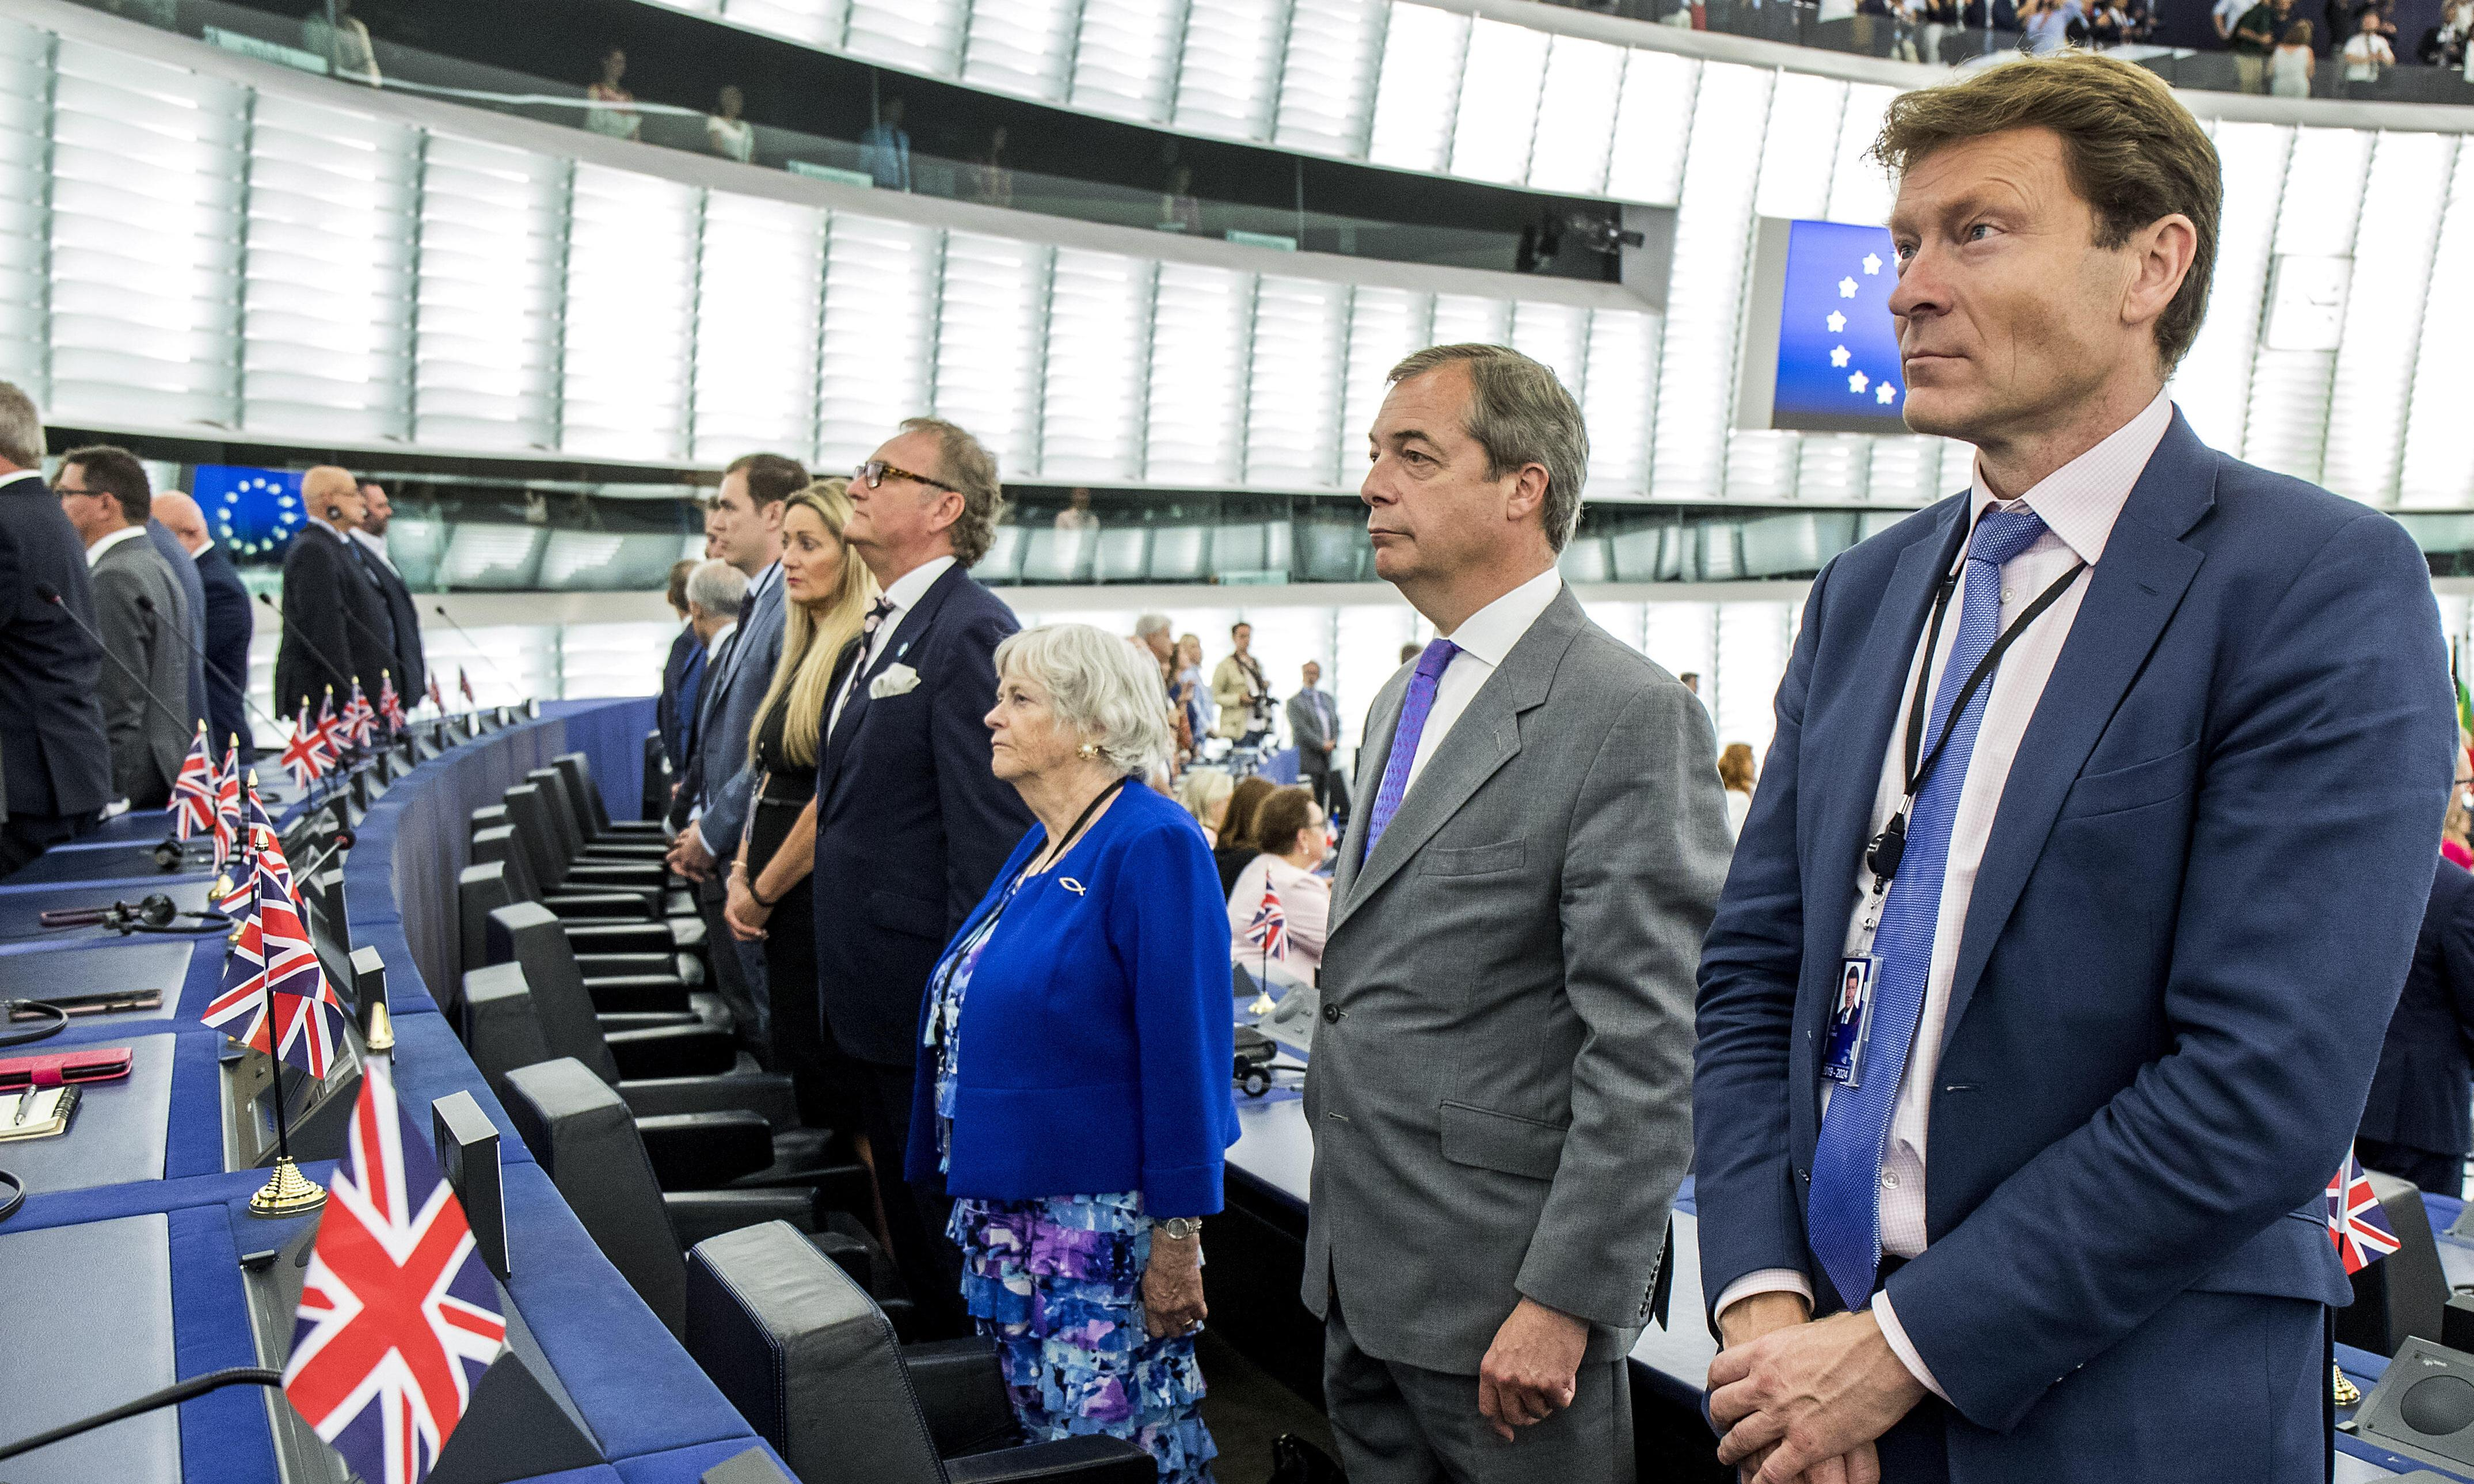 Beethoven's Ninth – Farage turned his back on more than just music